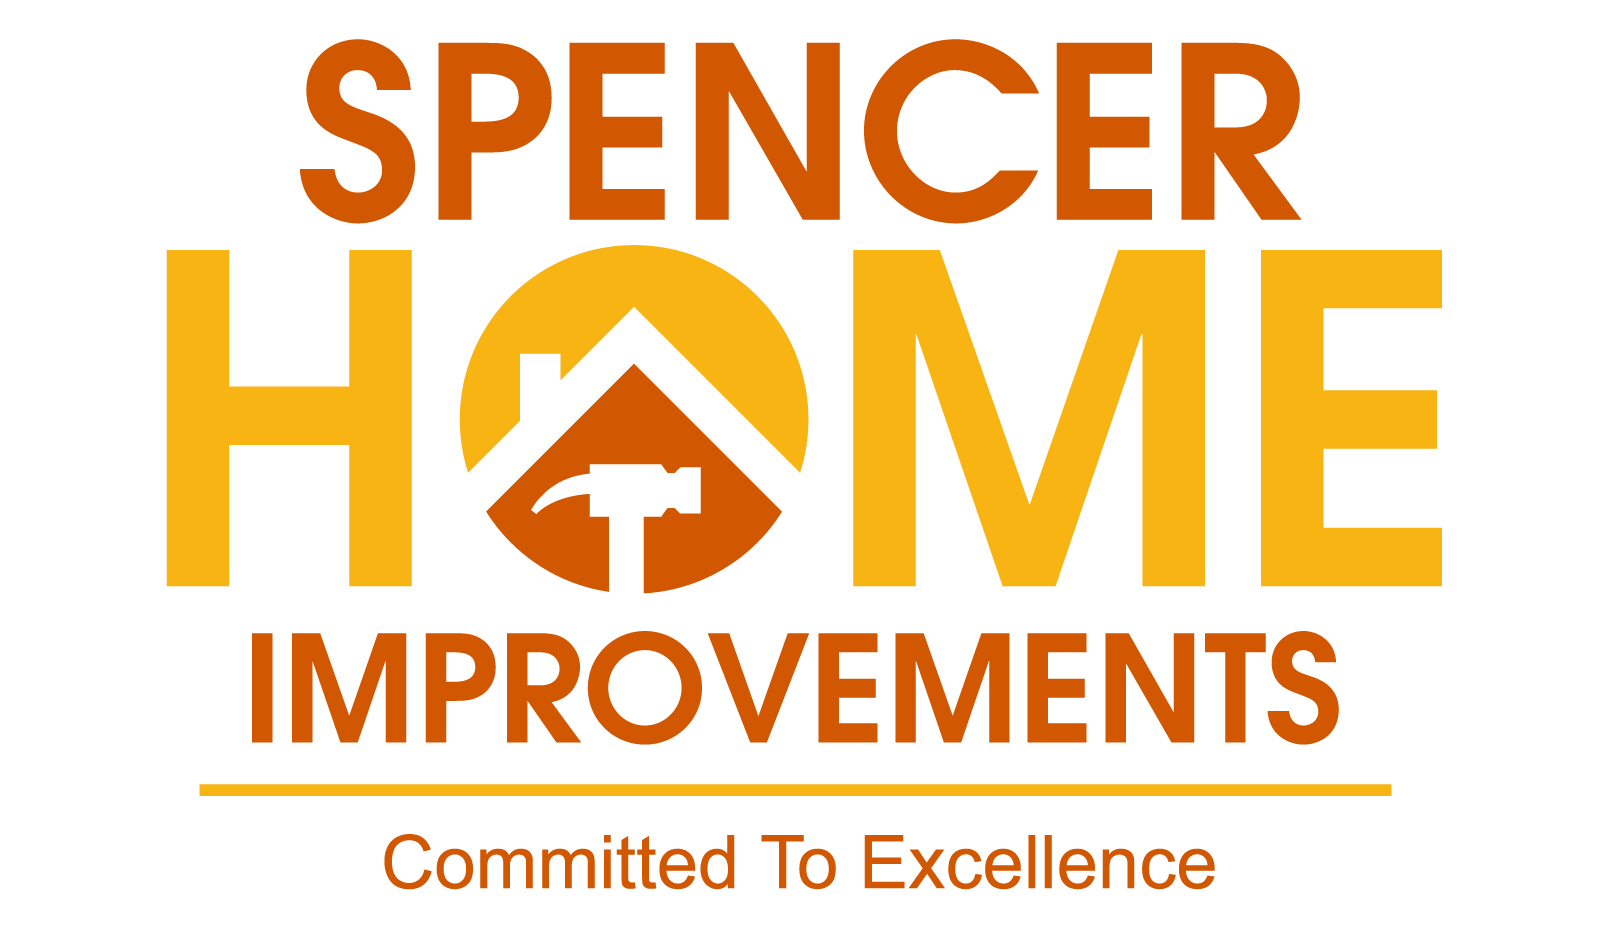 Spencer Home Improvements